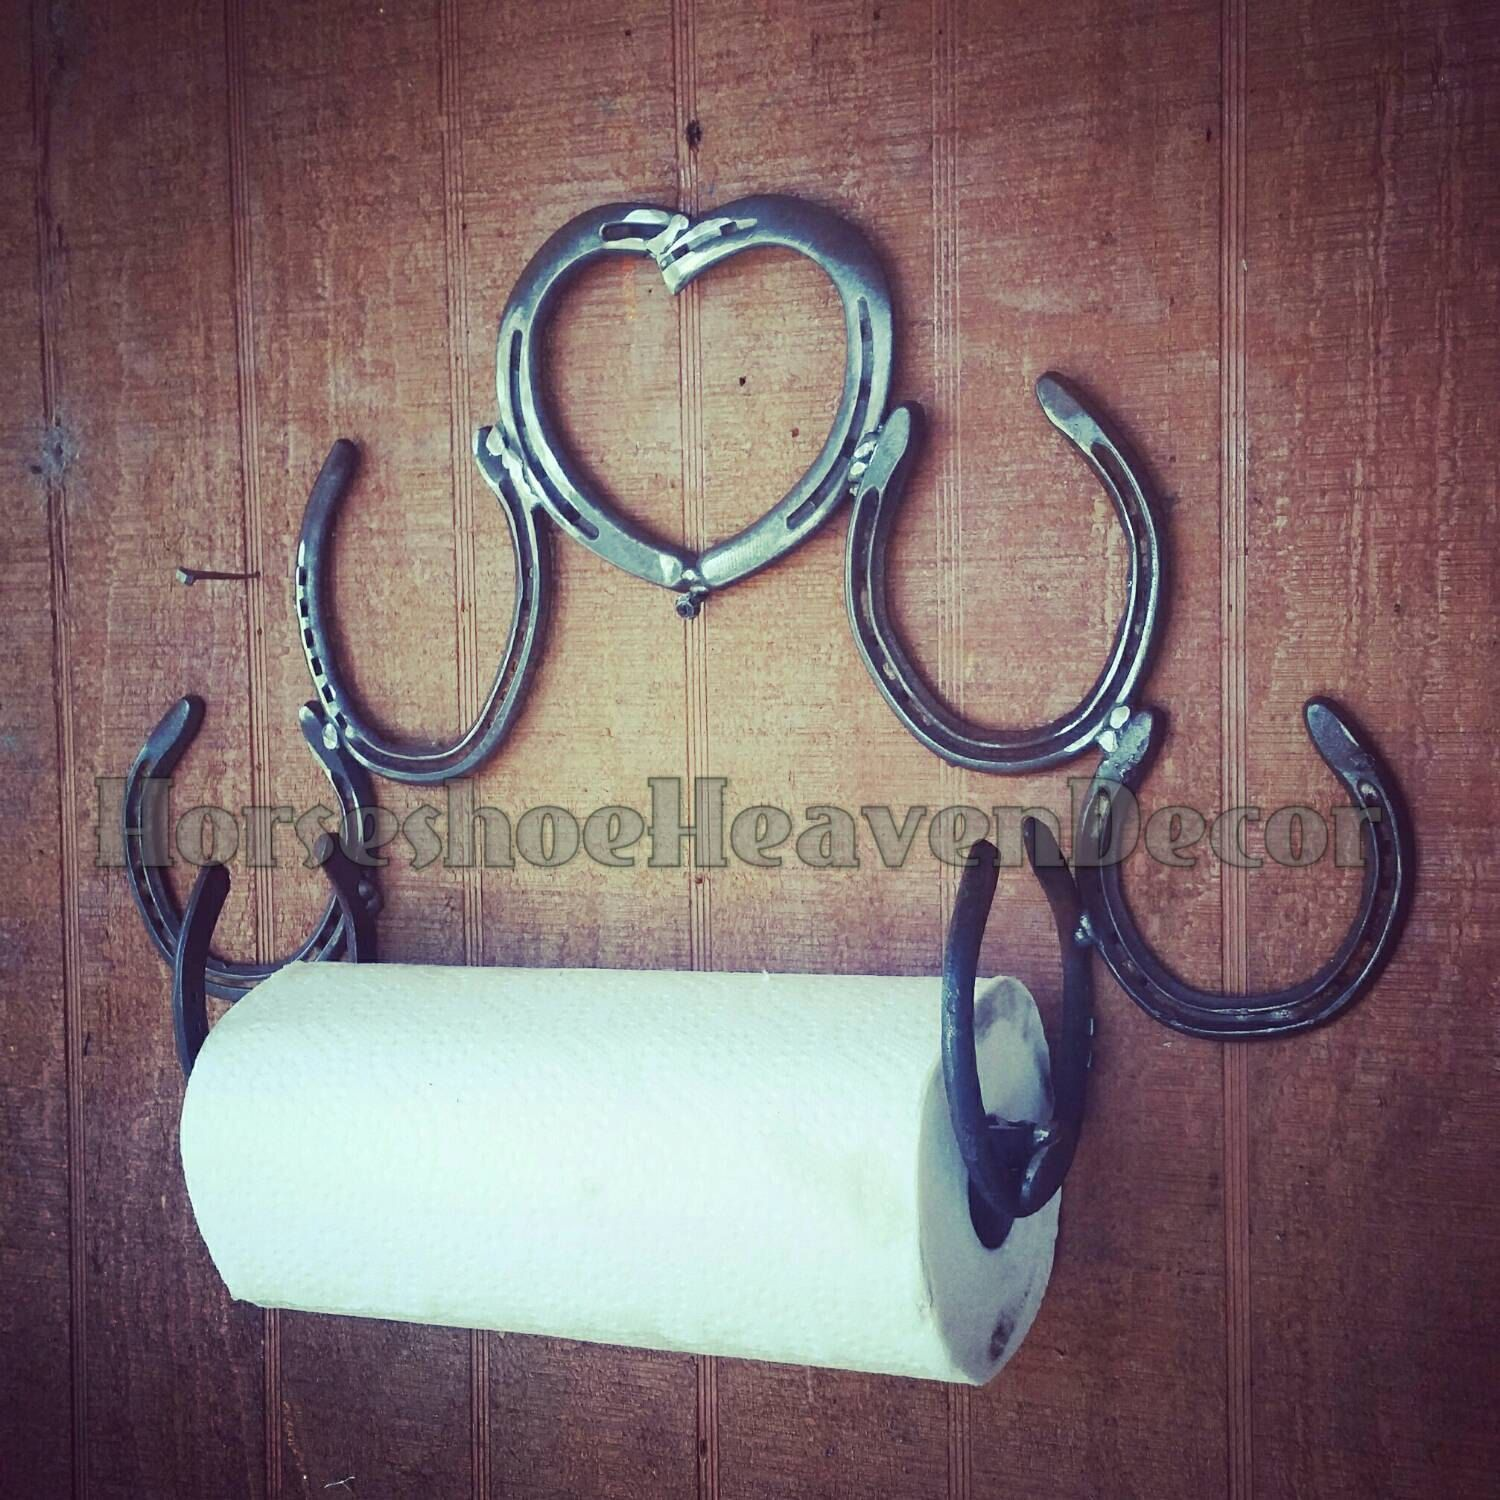 Country Home Accessories Shops Kitchen Paper Towel Holder